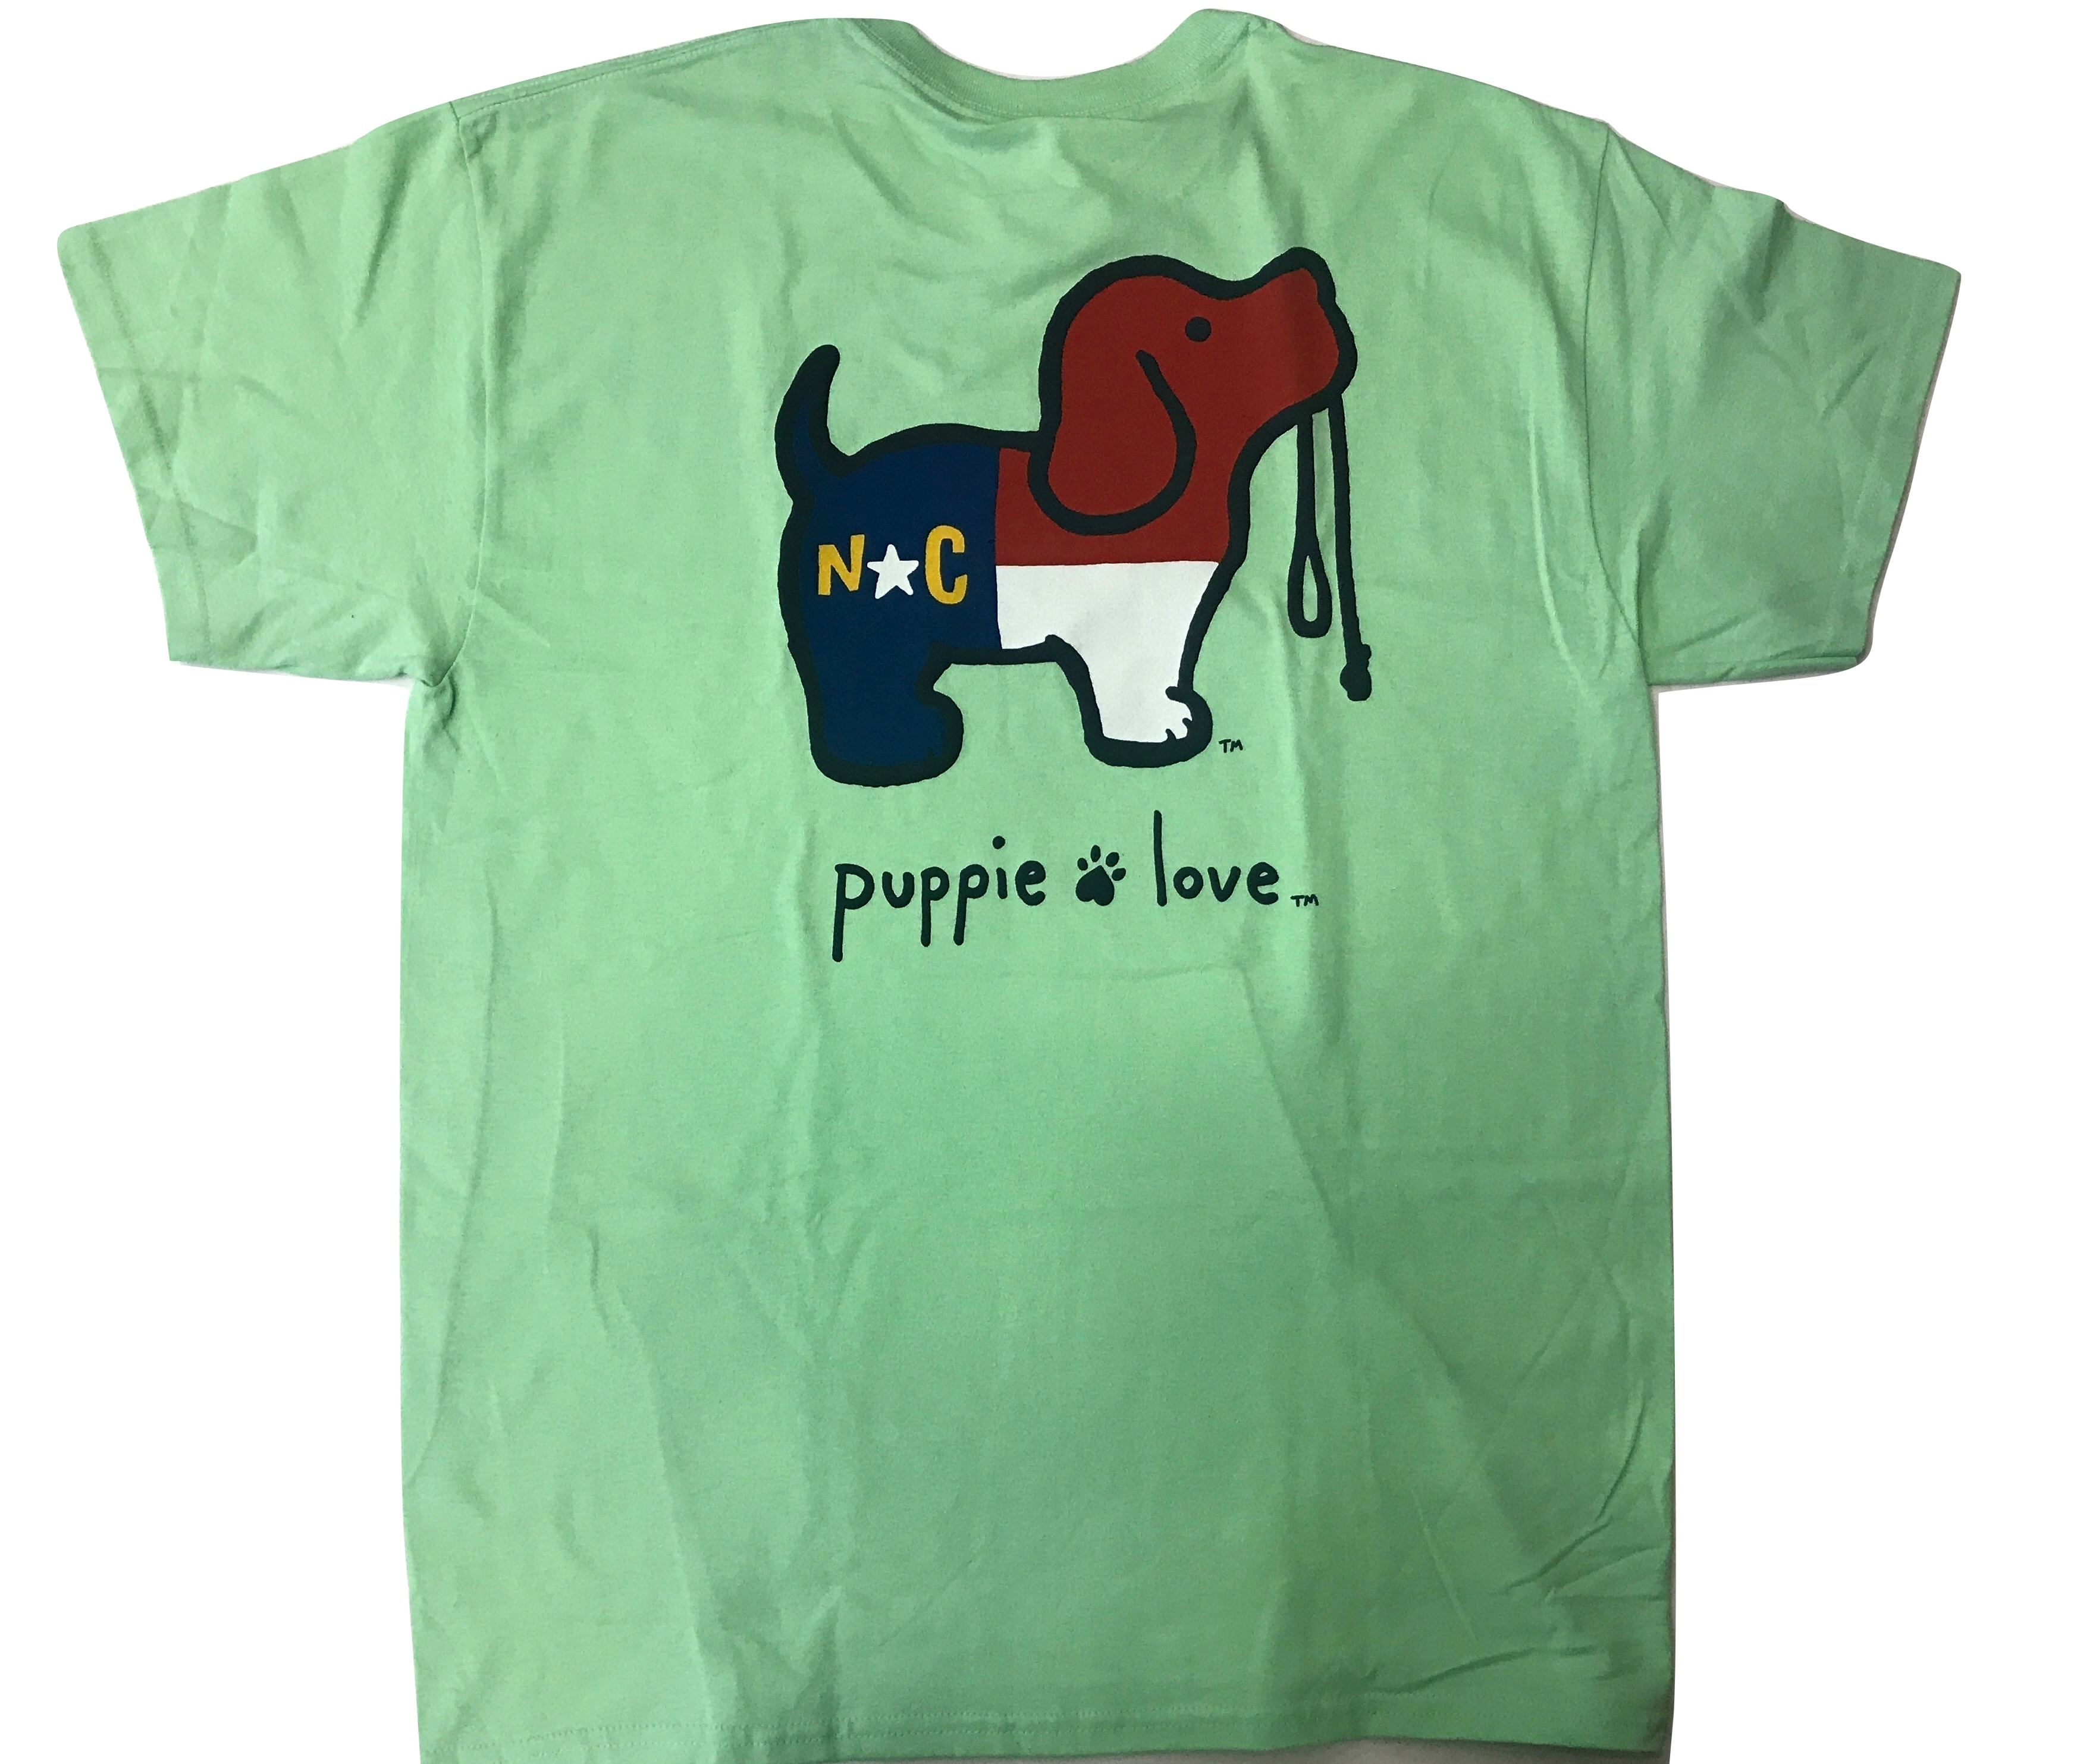 Puppy love north carolina pup t shirt green krazy mikez for Love notes brand shirt